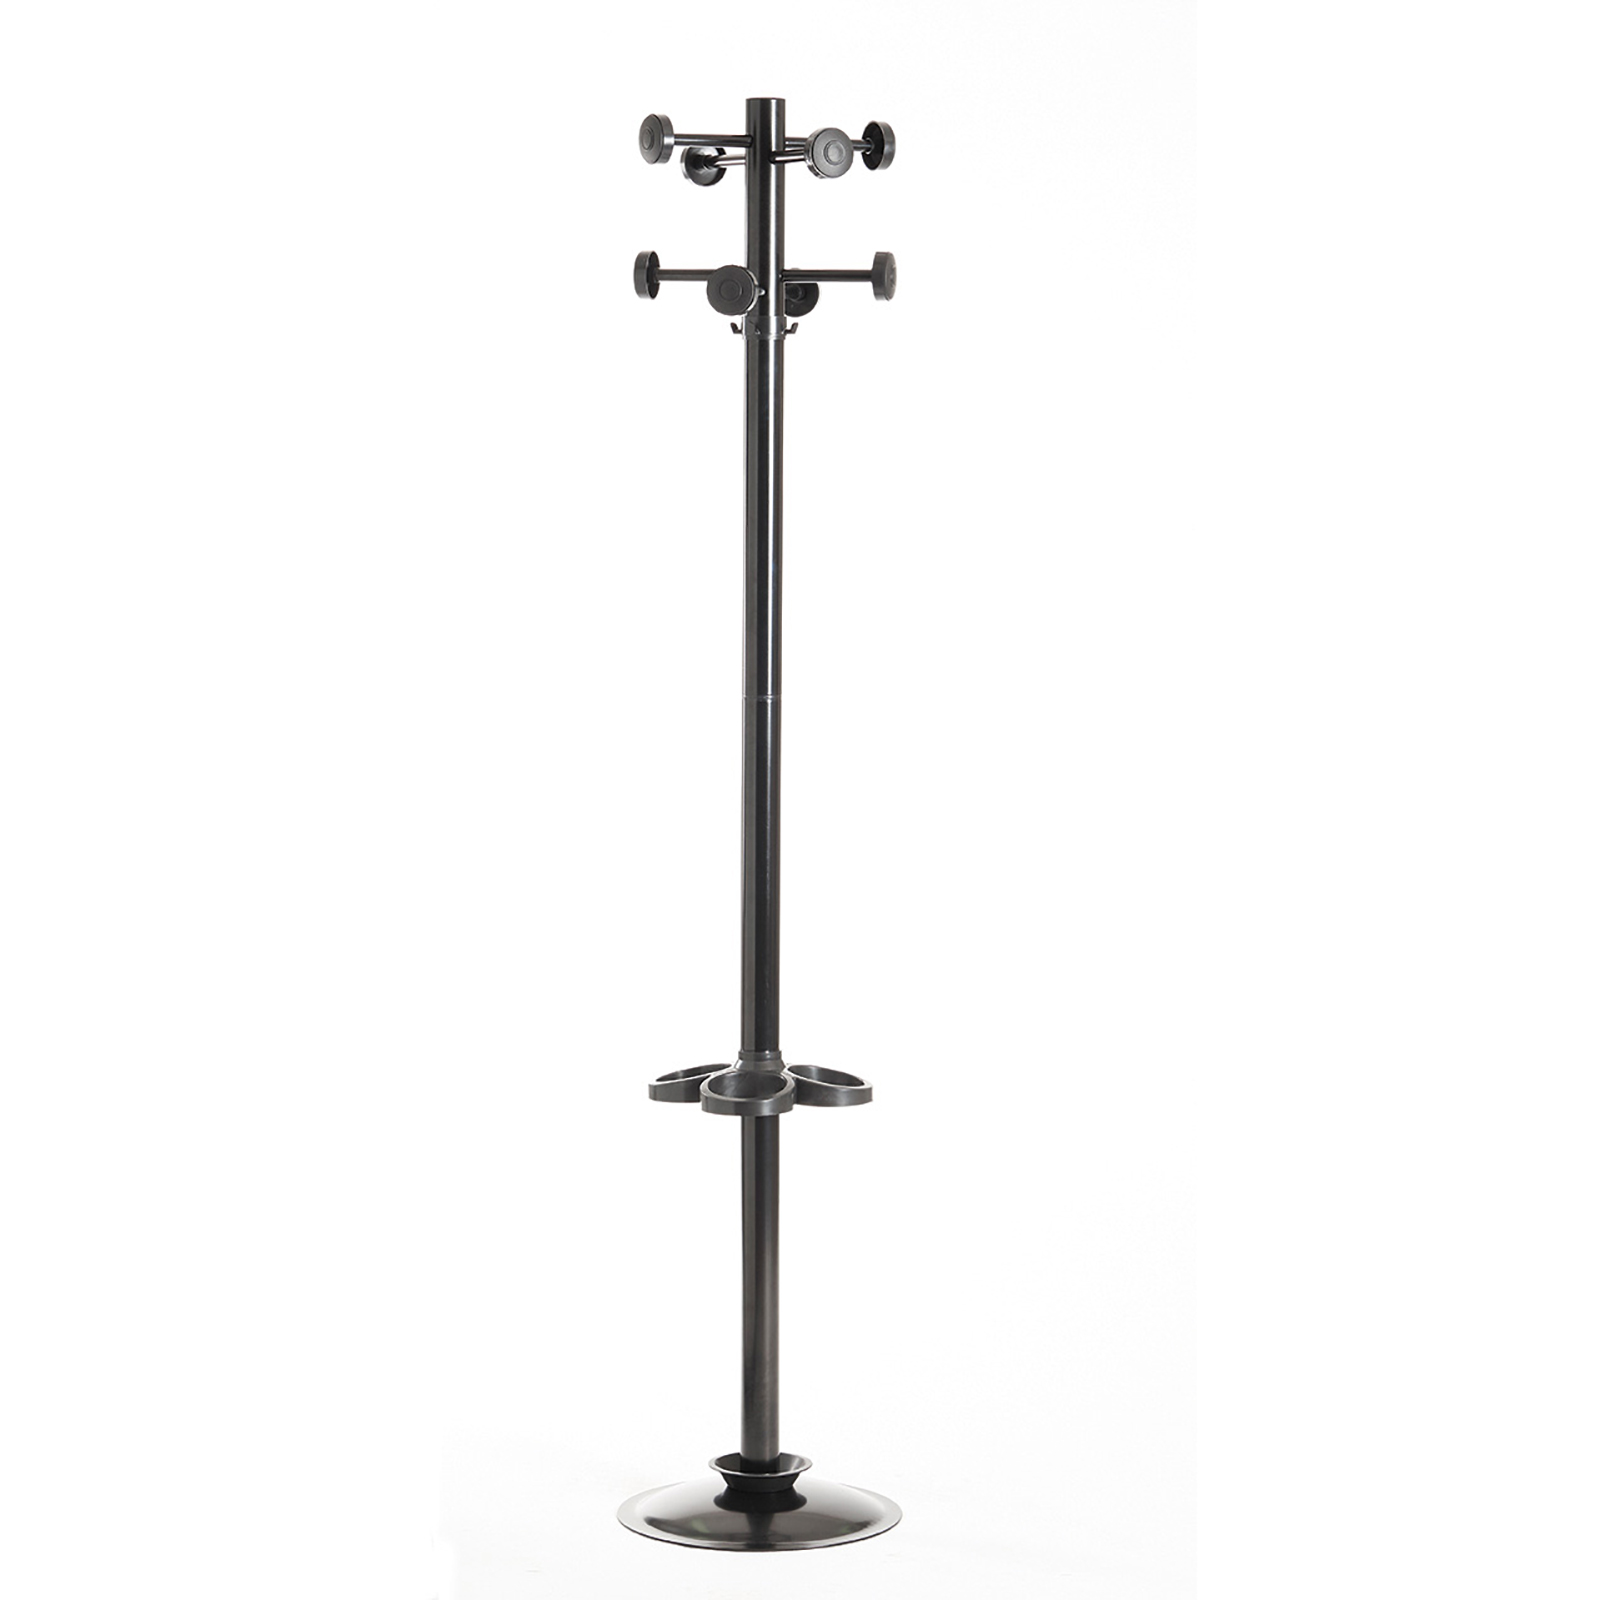 Coat & umbrella stand with 8 coat hooks and 8 umbrella hooks 1780mm high - black